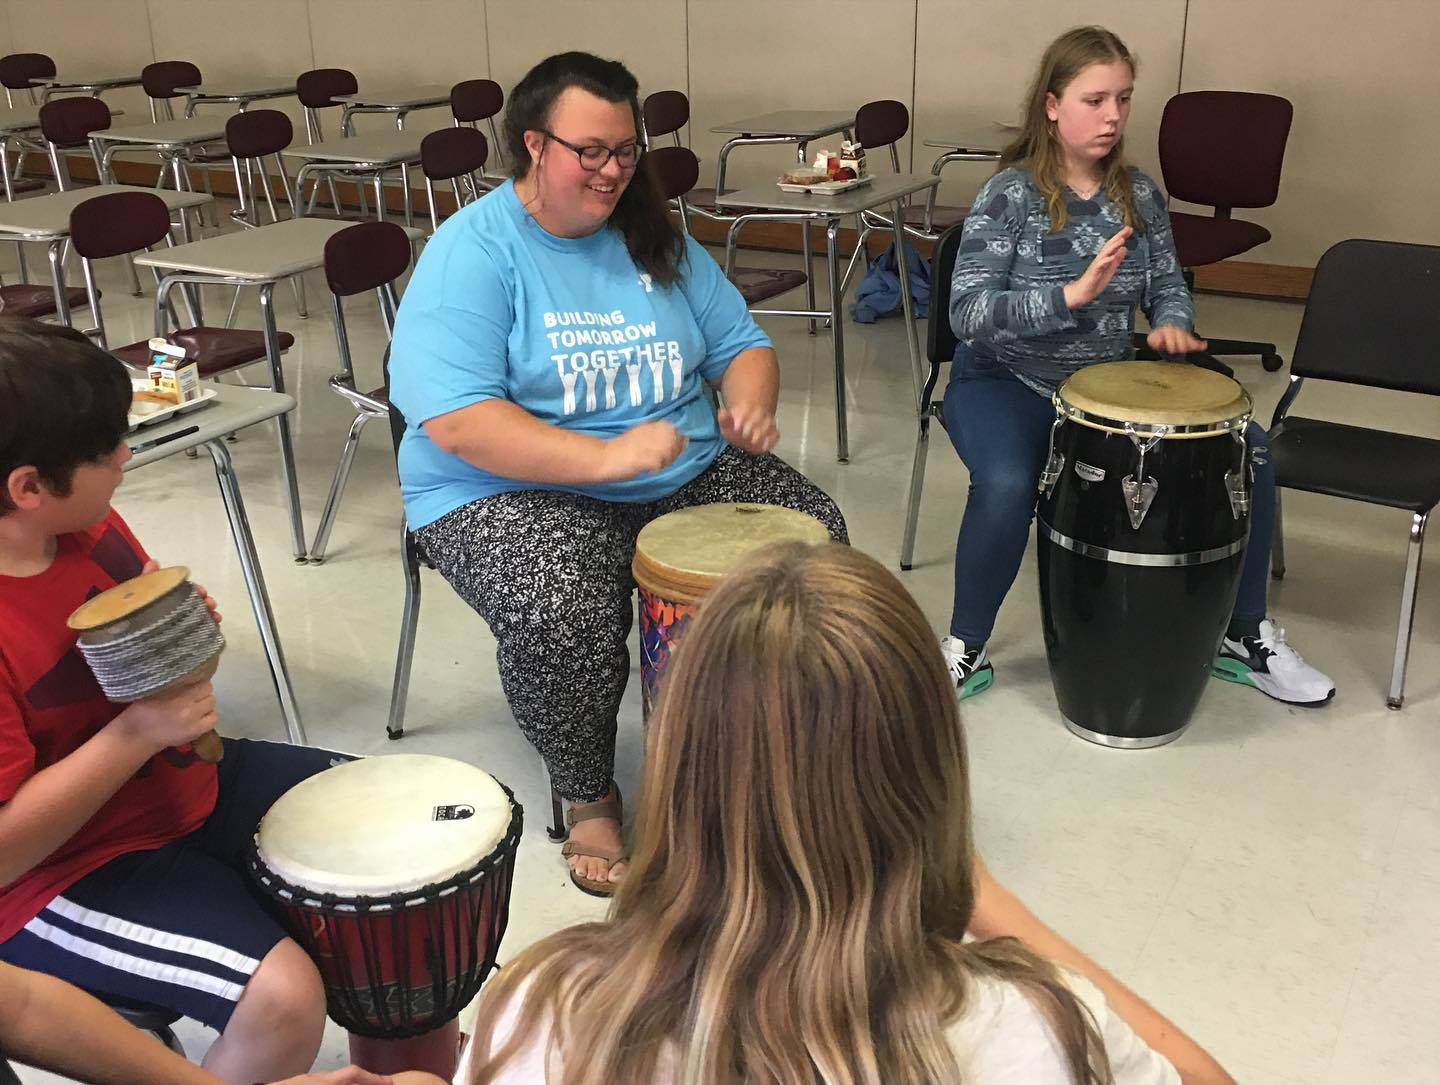 middle school students drumming on drums